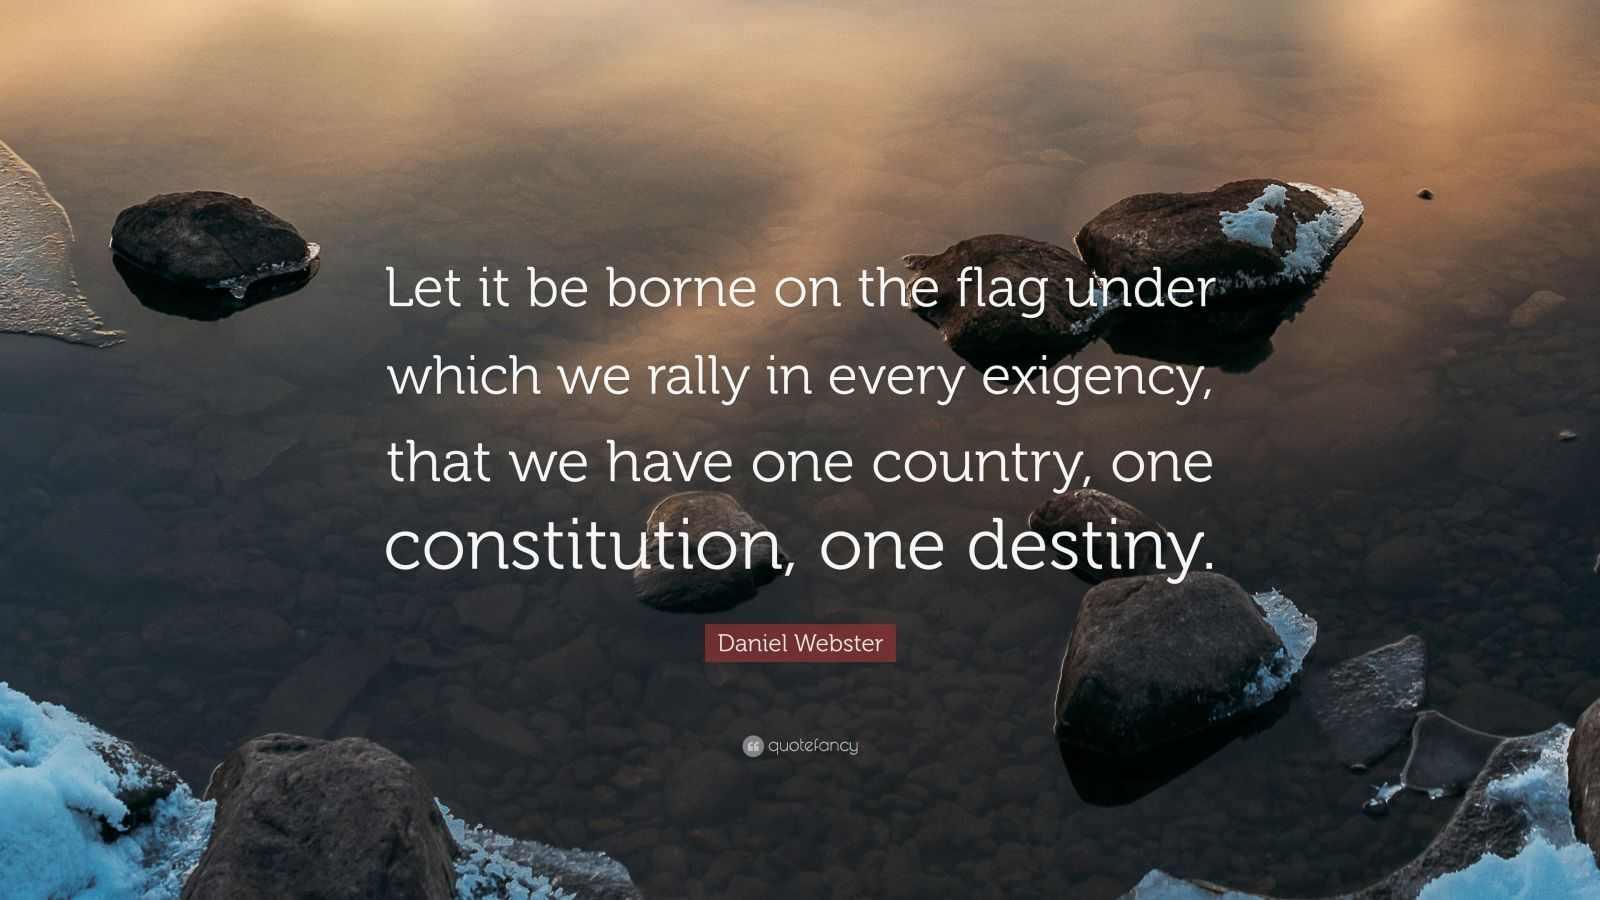 """Daniel Webster Quote: """"Let it be borne on the flag under which we rally in every exigency, that we have one country, one constitution, one destiny."""""""